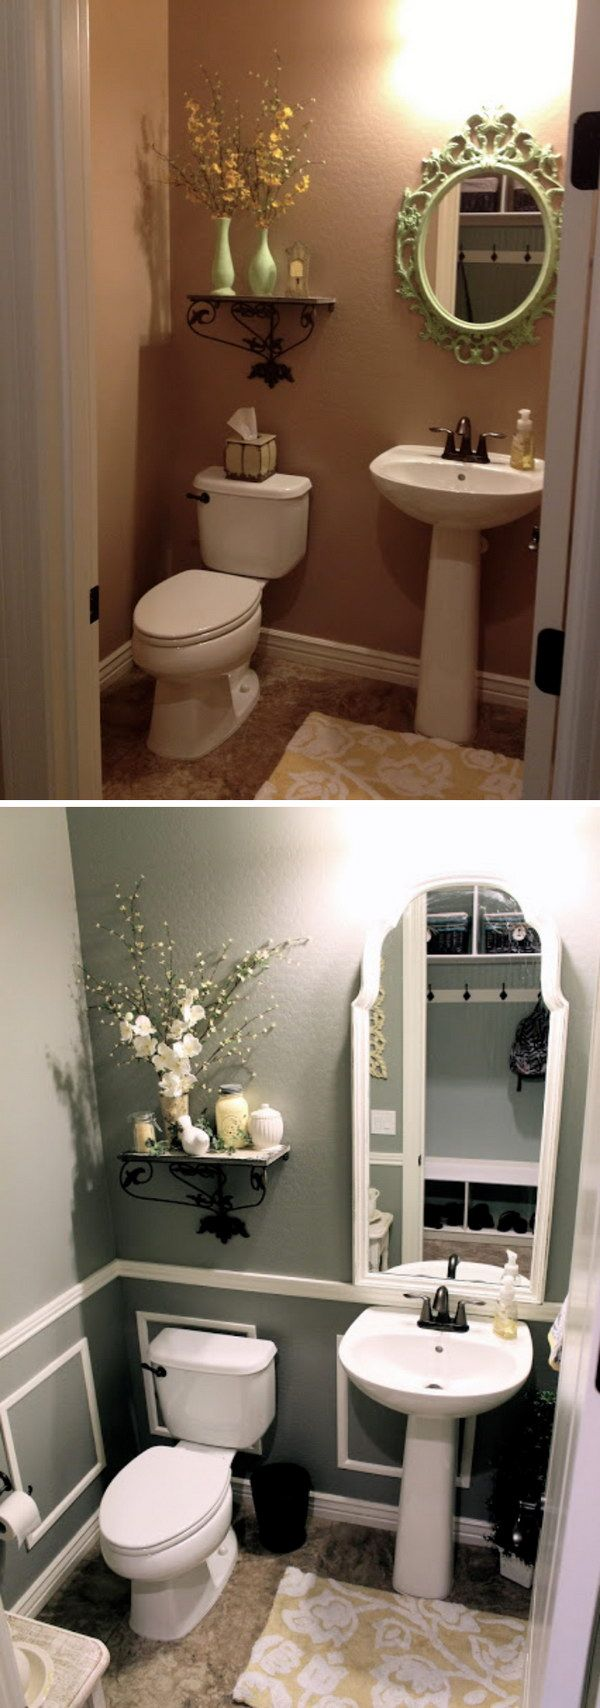 Bathroom Makeovers And Remodeling Ideas top 25+ best budget bathroom makeovers ideas on pinterest | budget